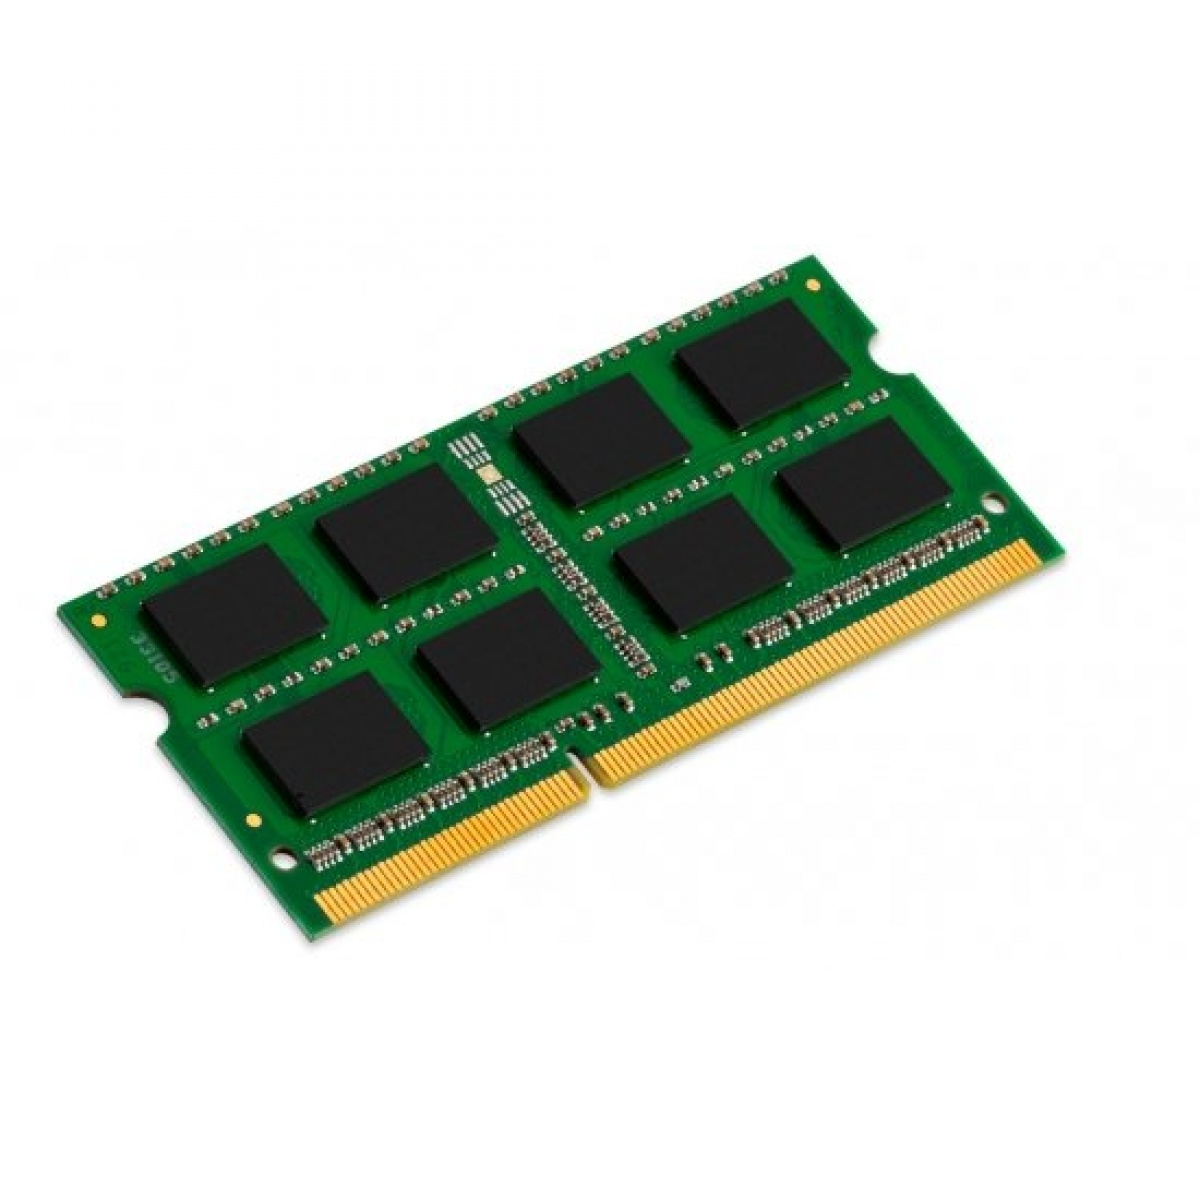 Memorie laptop KCP316SS8/4, DDR3, 4 GB, 1600 MHz, CL11, 1.5V, Dell